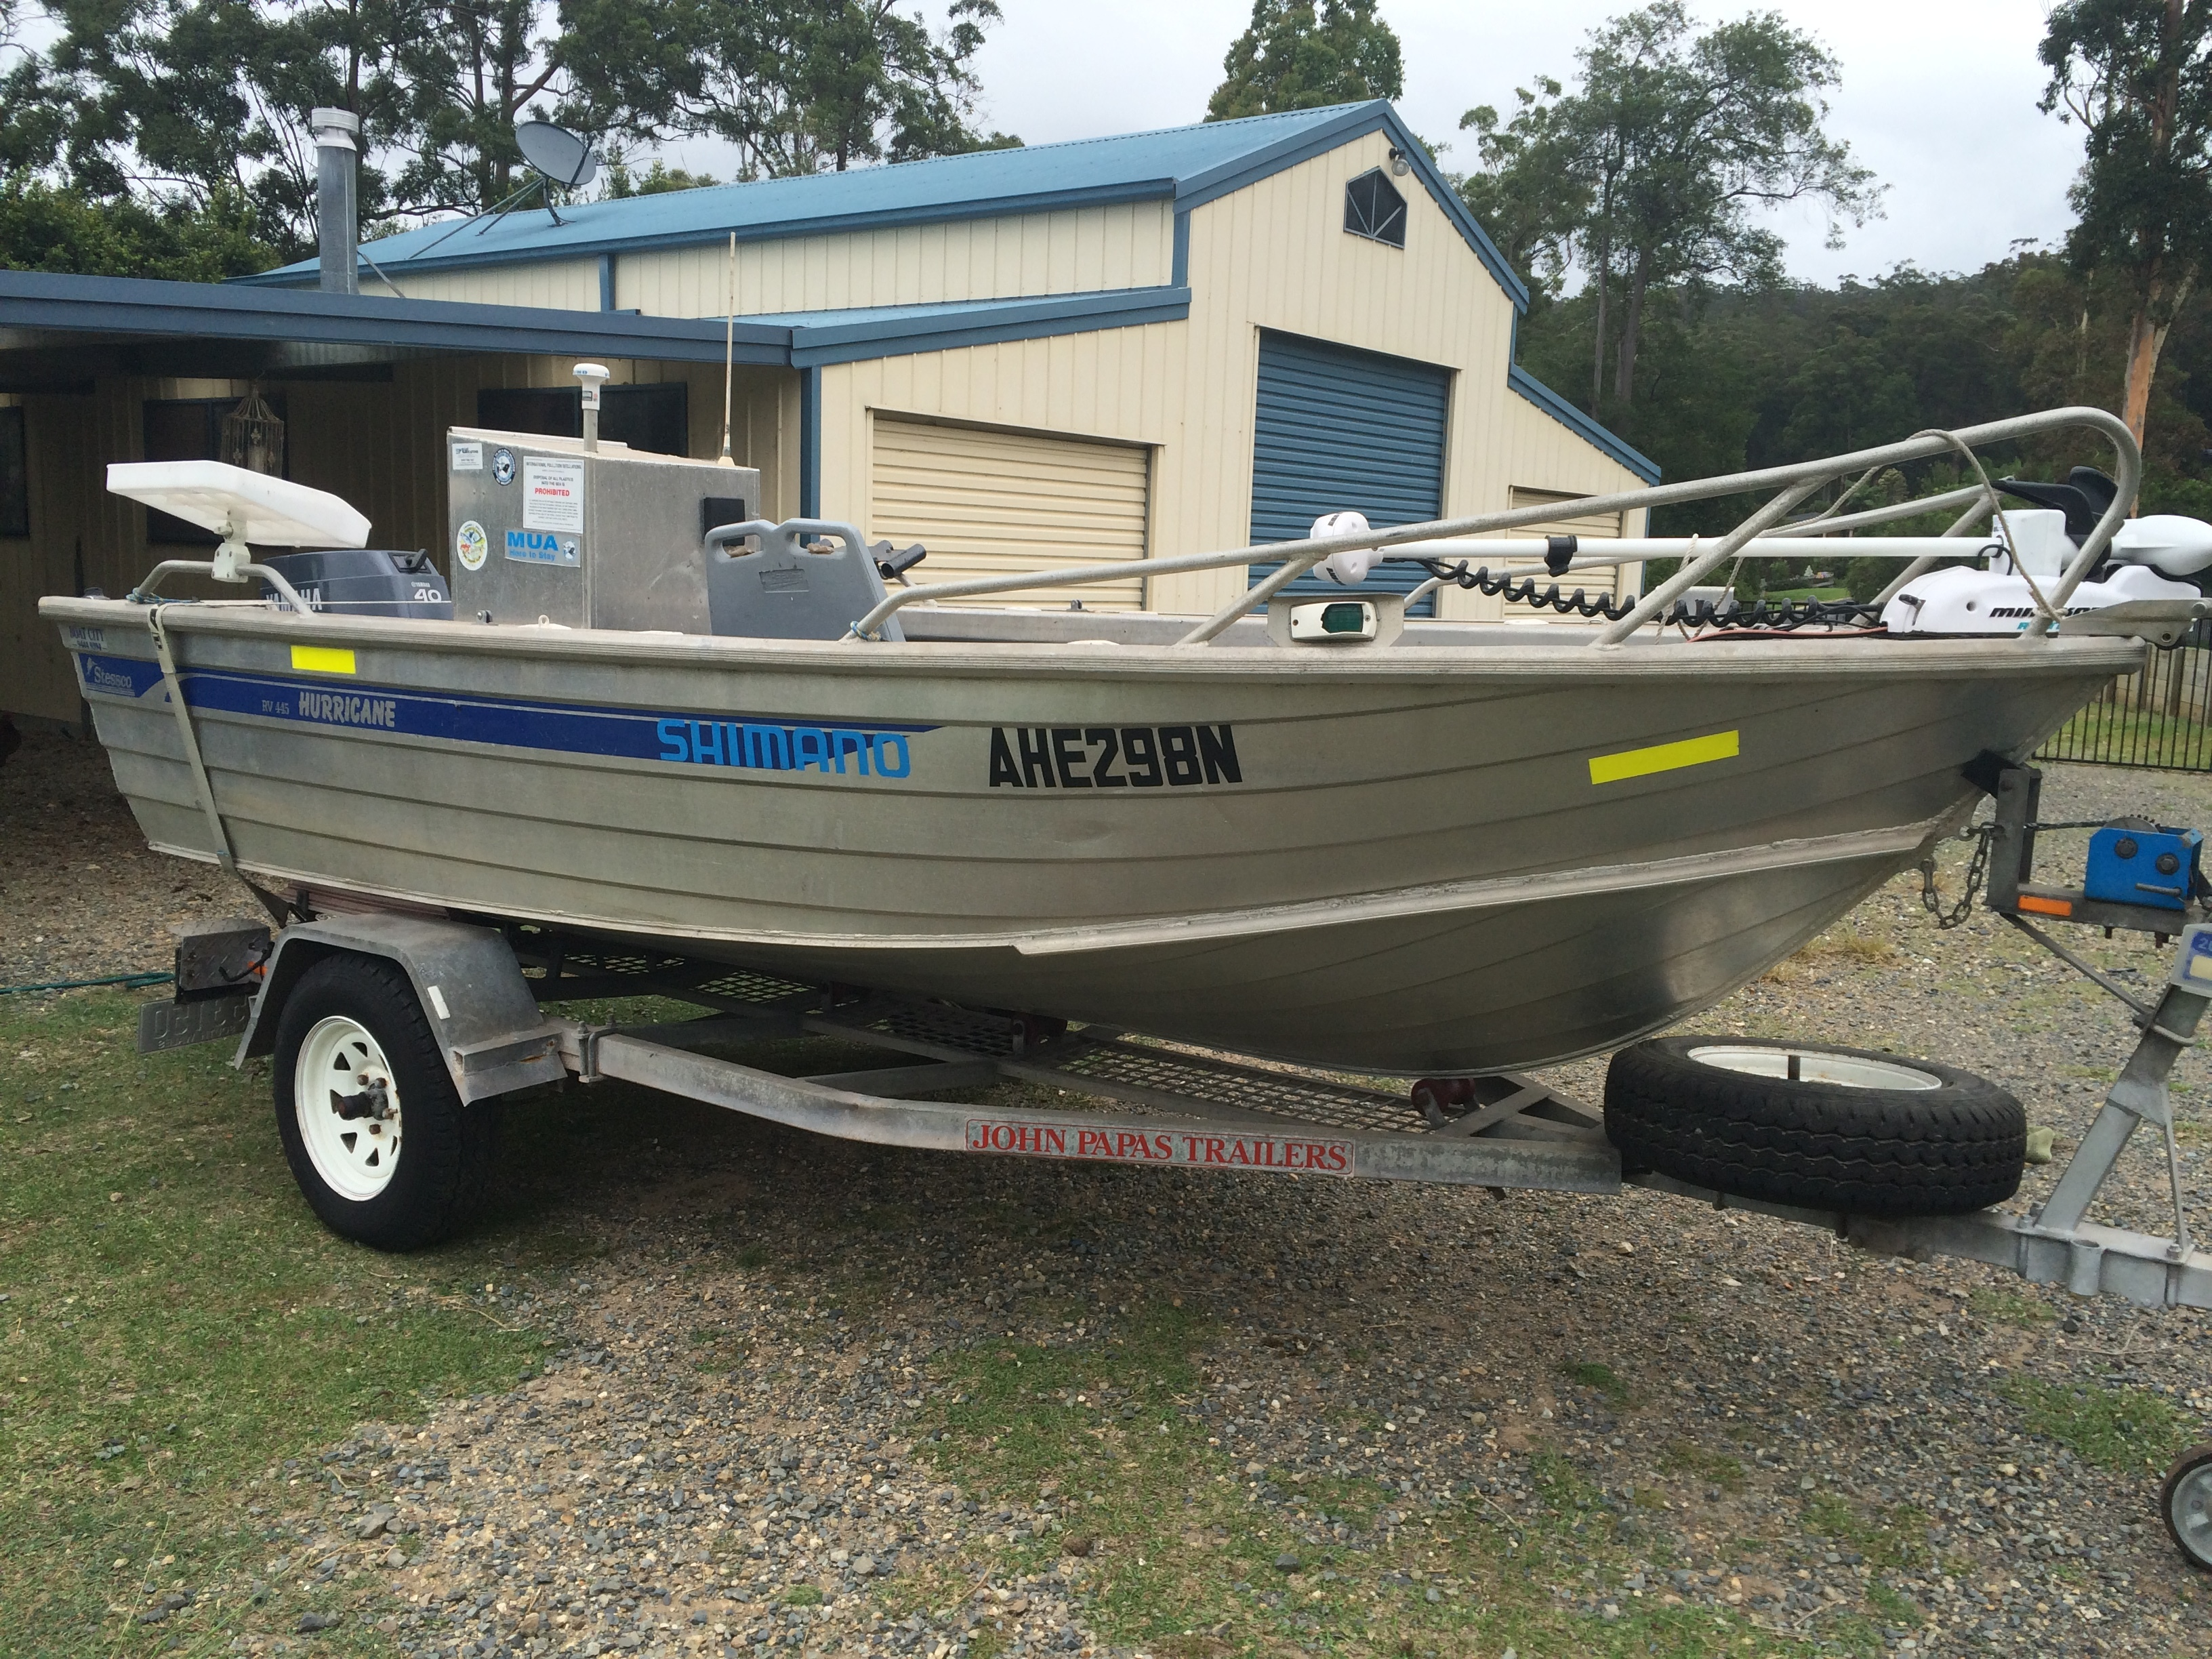 This 445RV Hurricane is an awesome boat, has 40hp Yamaha 2 stroke, minn kota with ipilot and sounder...